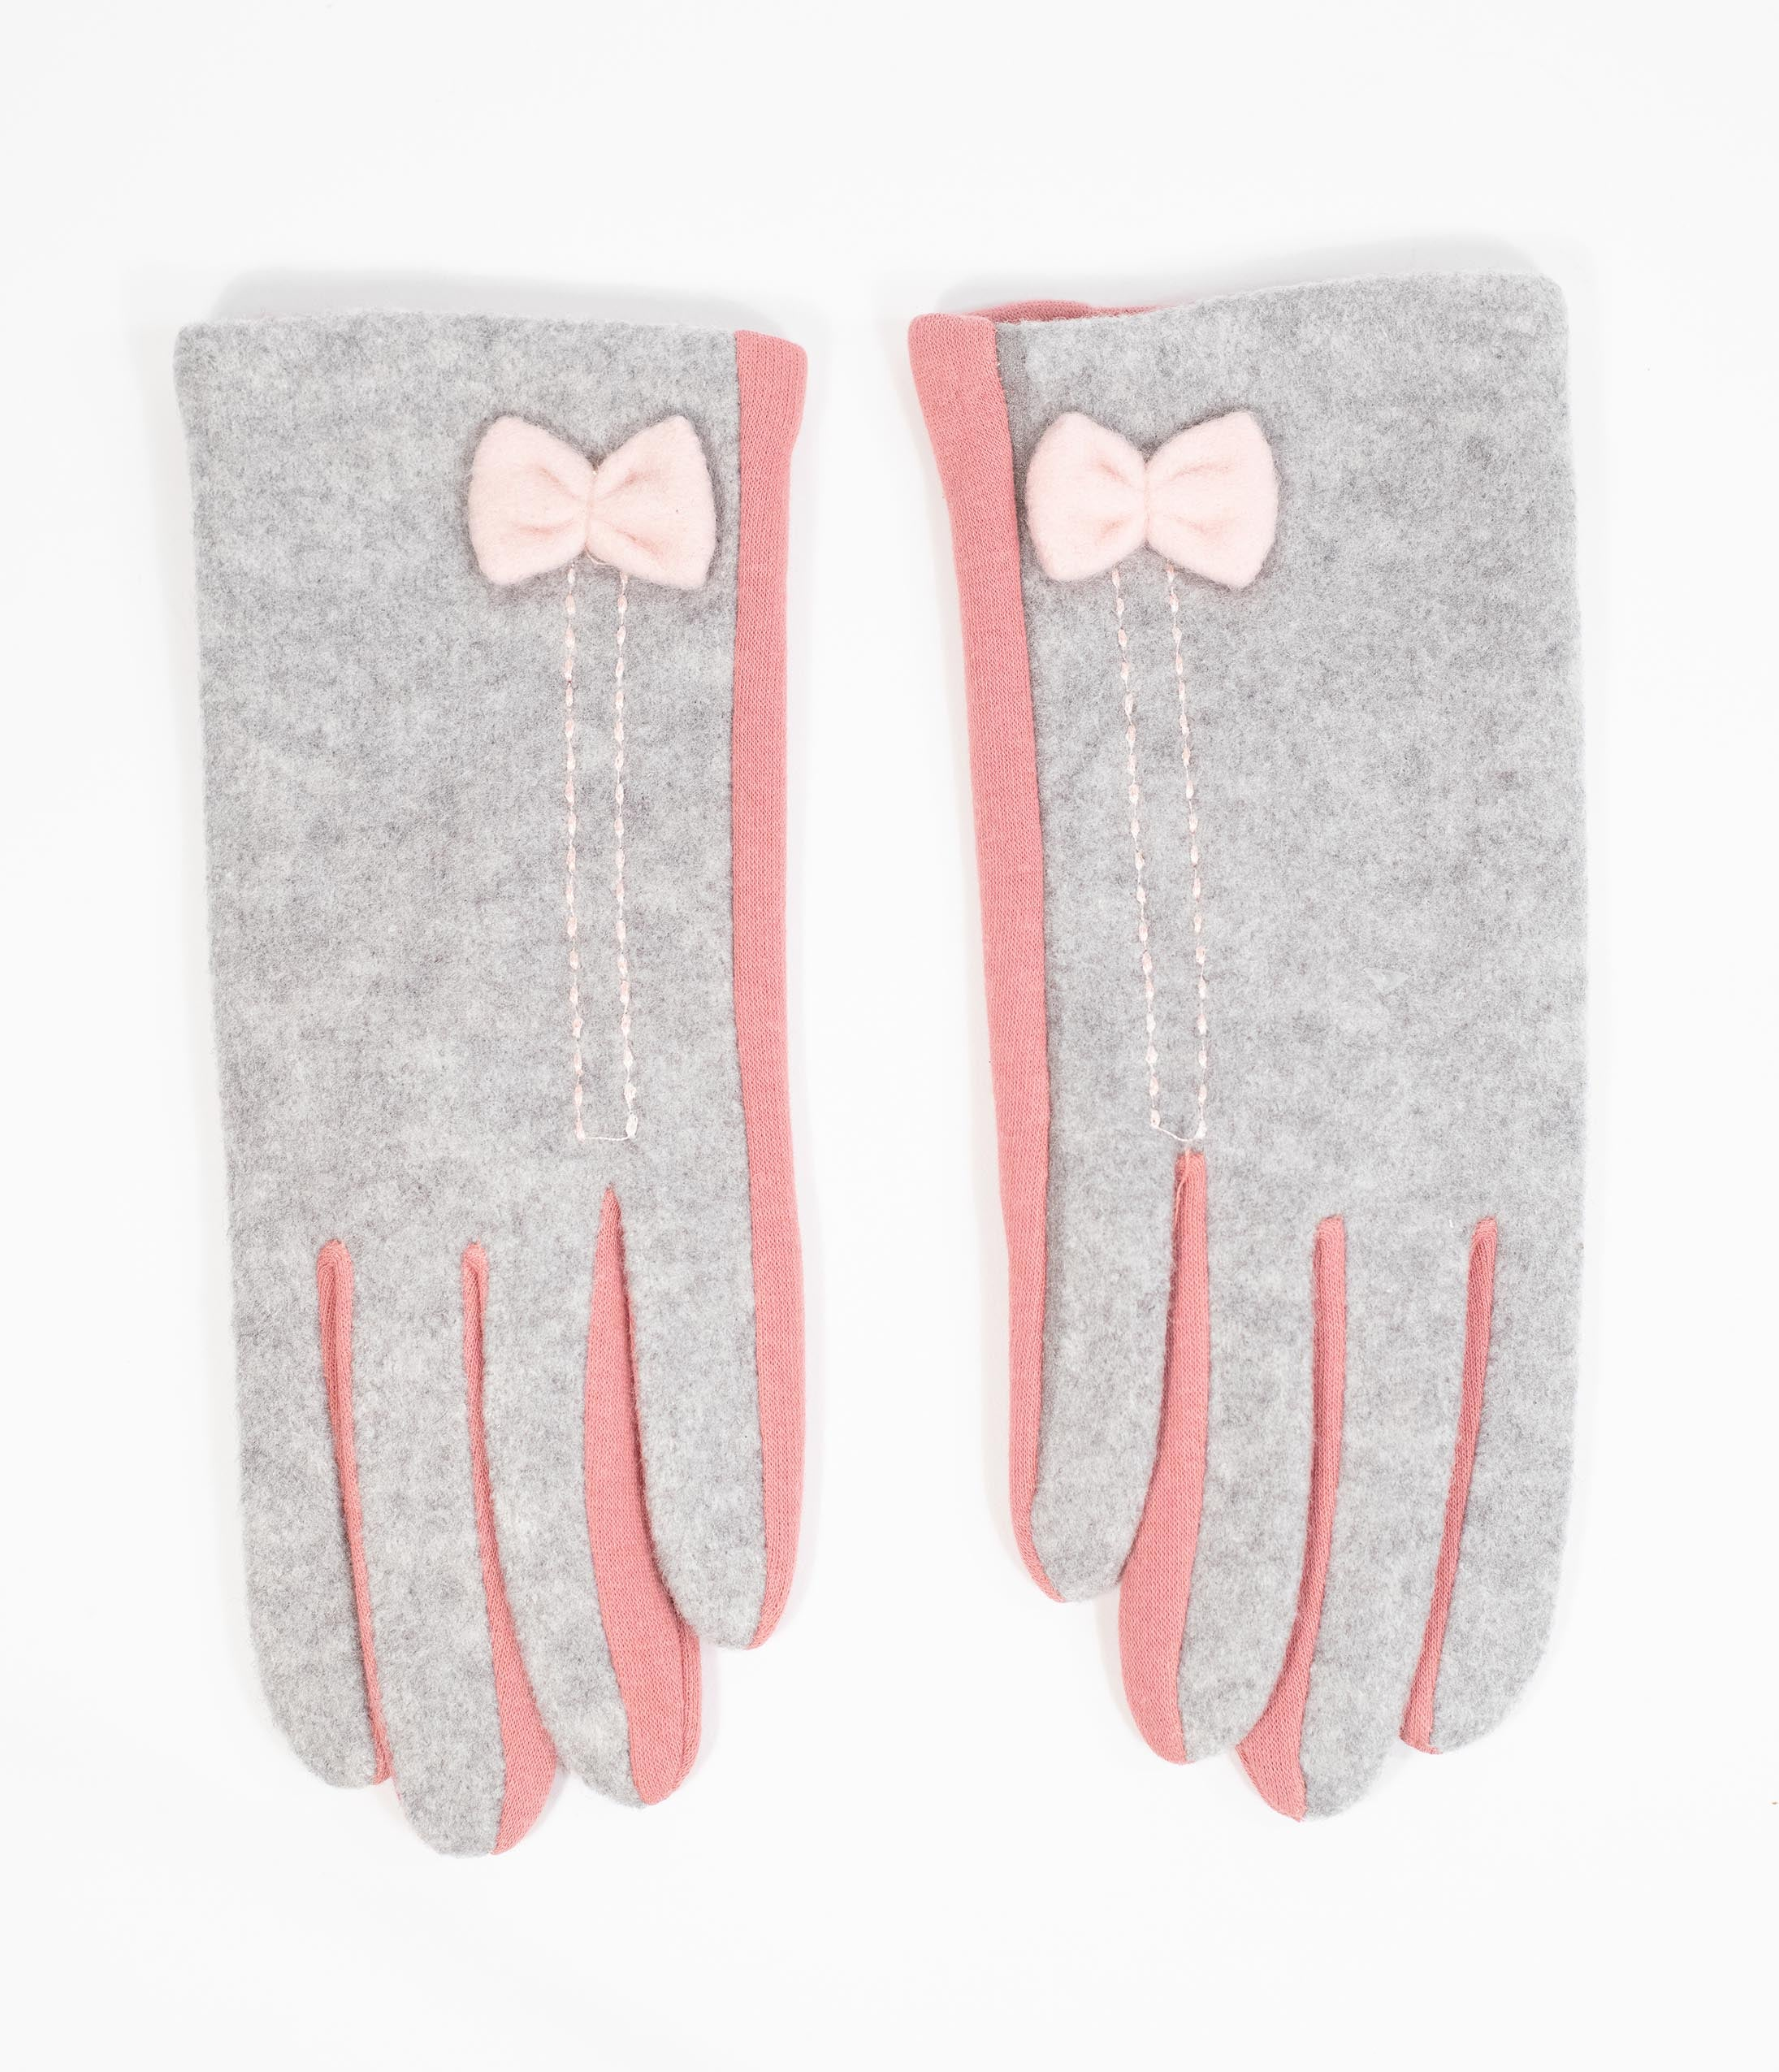 Vintage Style Gloves- Long, Wrist, Evening, Day, Leather, Lace Vintage Style Grey  Pink Bow Two Tone Gloves $24.00 AT vintagedancer.com